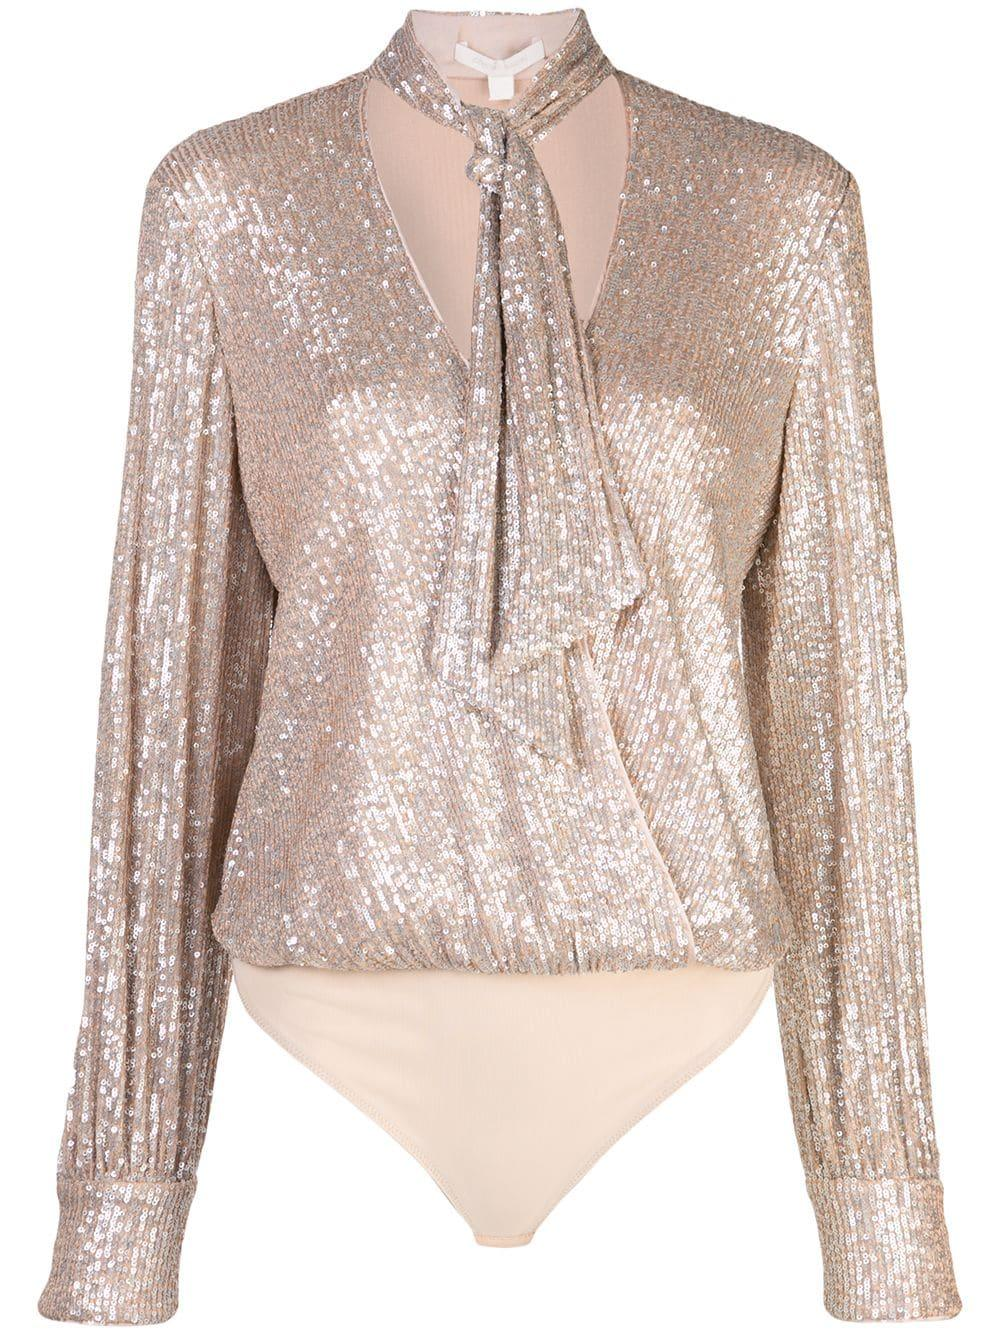 Long Sleeve Sequin Embroidered Cross Front Bodysuit Item # 120-8004-S